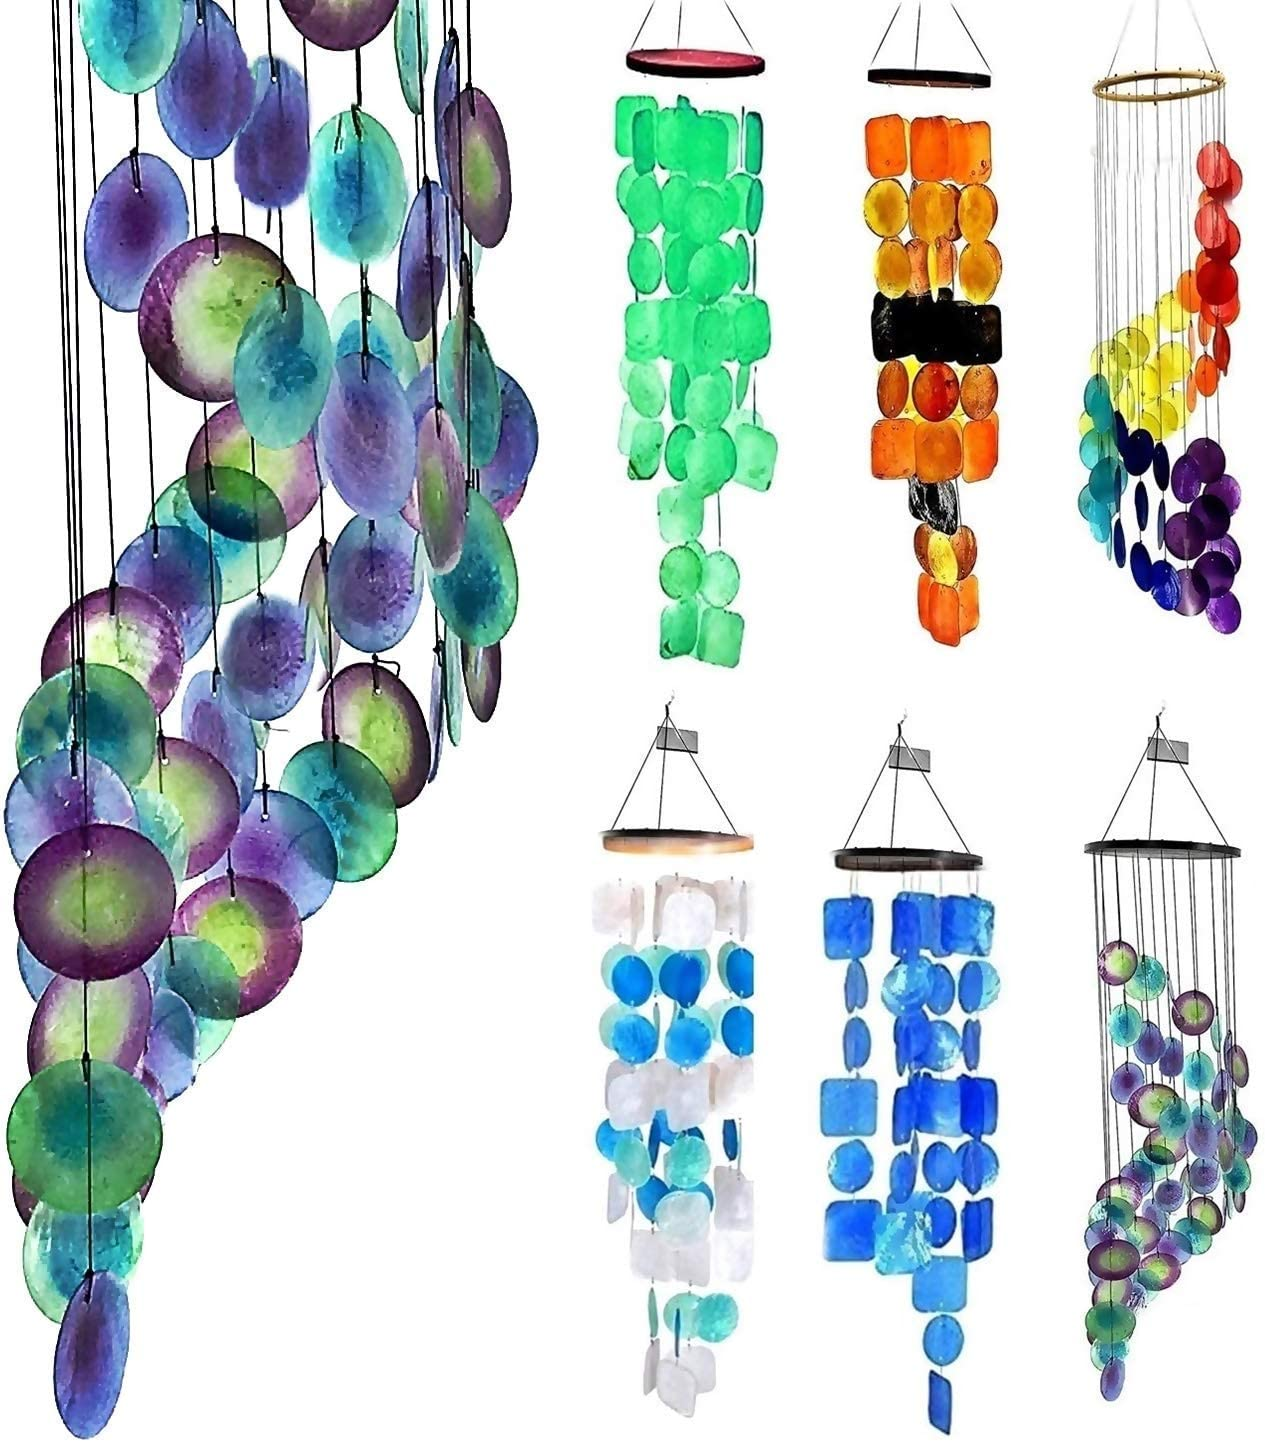 Bellaa 23332 Wind Chime Outdoor Garden Gifts for Mom Outside Chime Memorial Sympathy Windchimes Patio Yard Unique Home Decor Handmade Bamboo Wood Capiz Sea Glass Colors Peacock Metal S Hook 27 inch